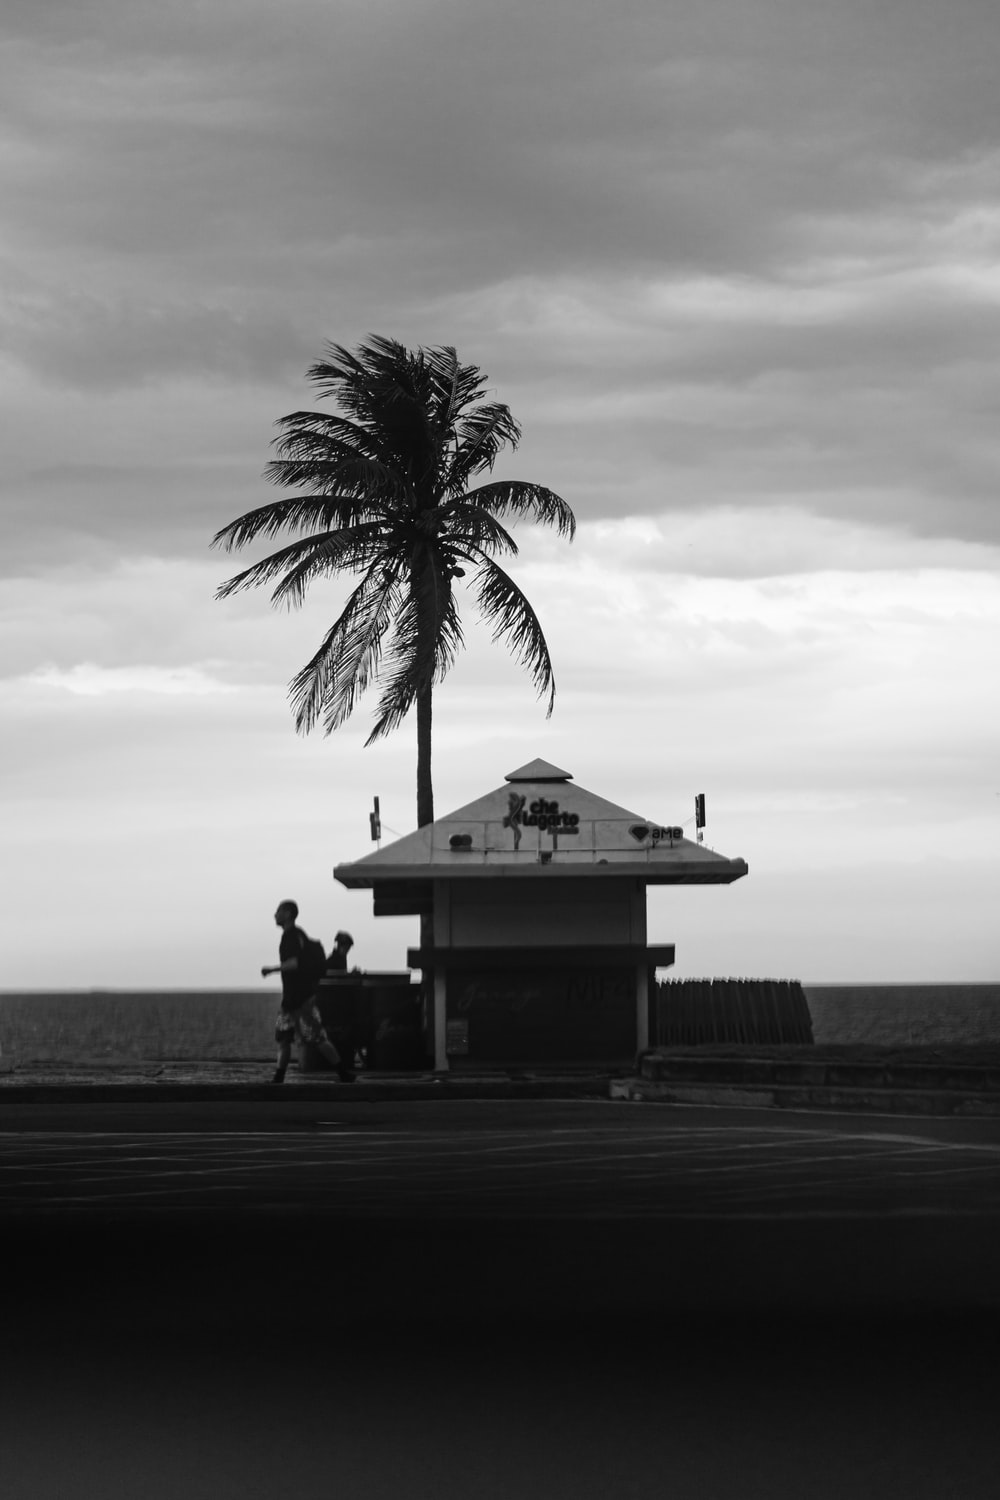 grayscale photo of 2 people sitting on bench near palm tree